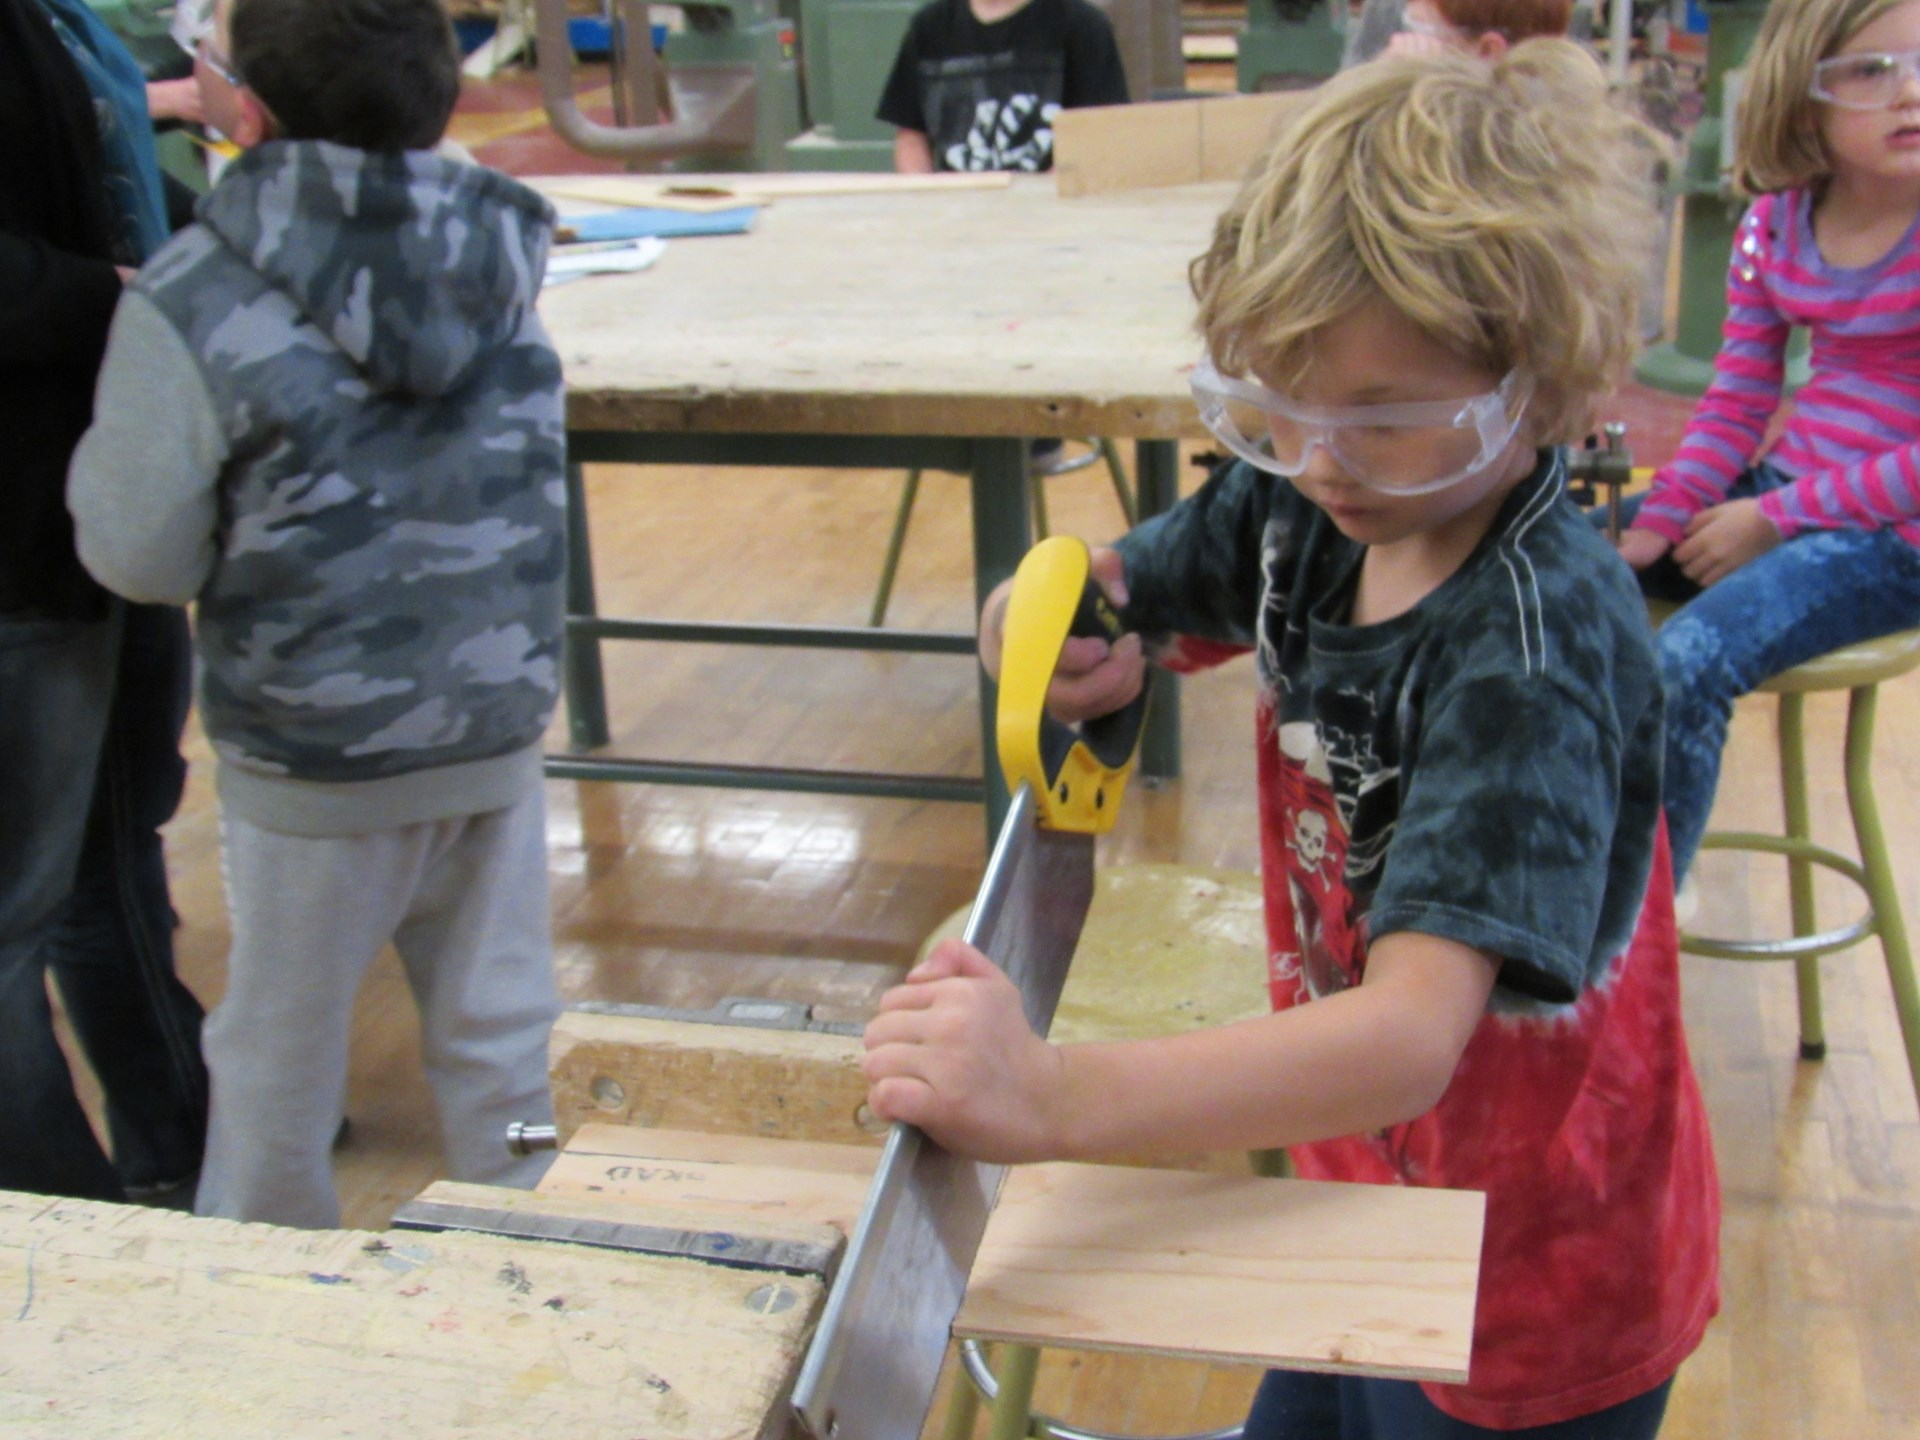 Tinker Time at Rocky Mountain Elementary School